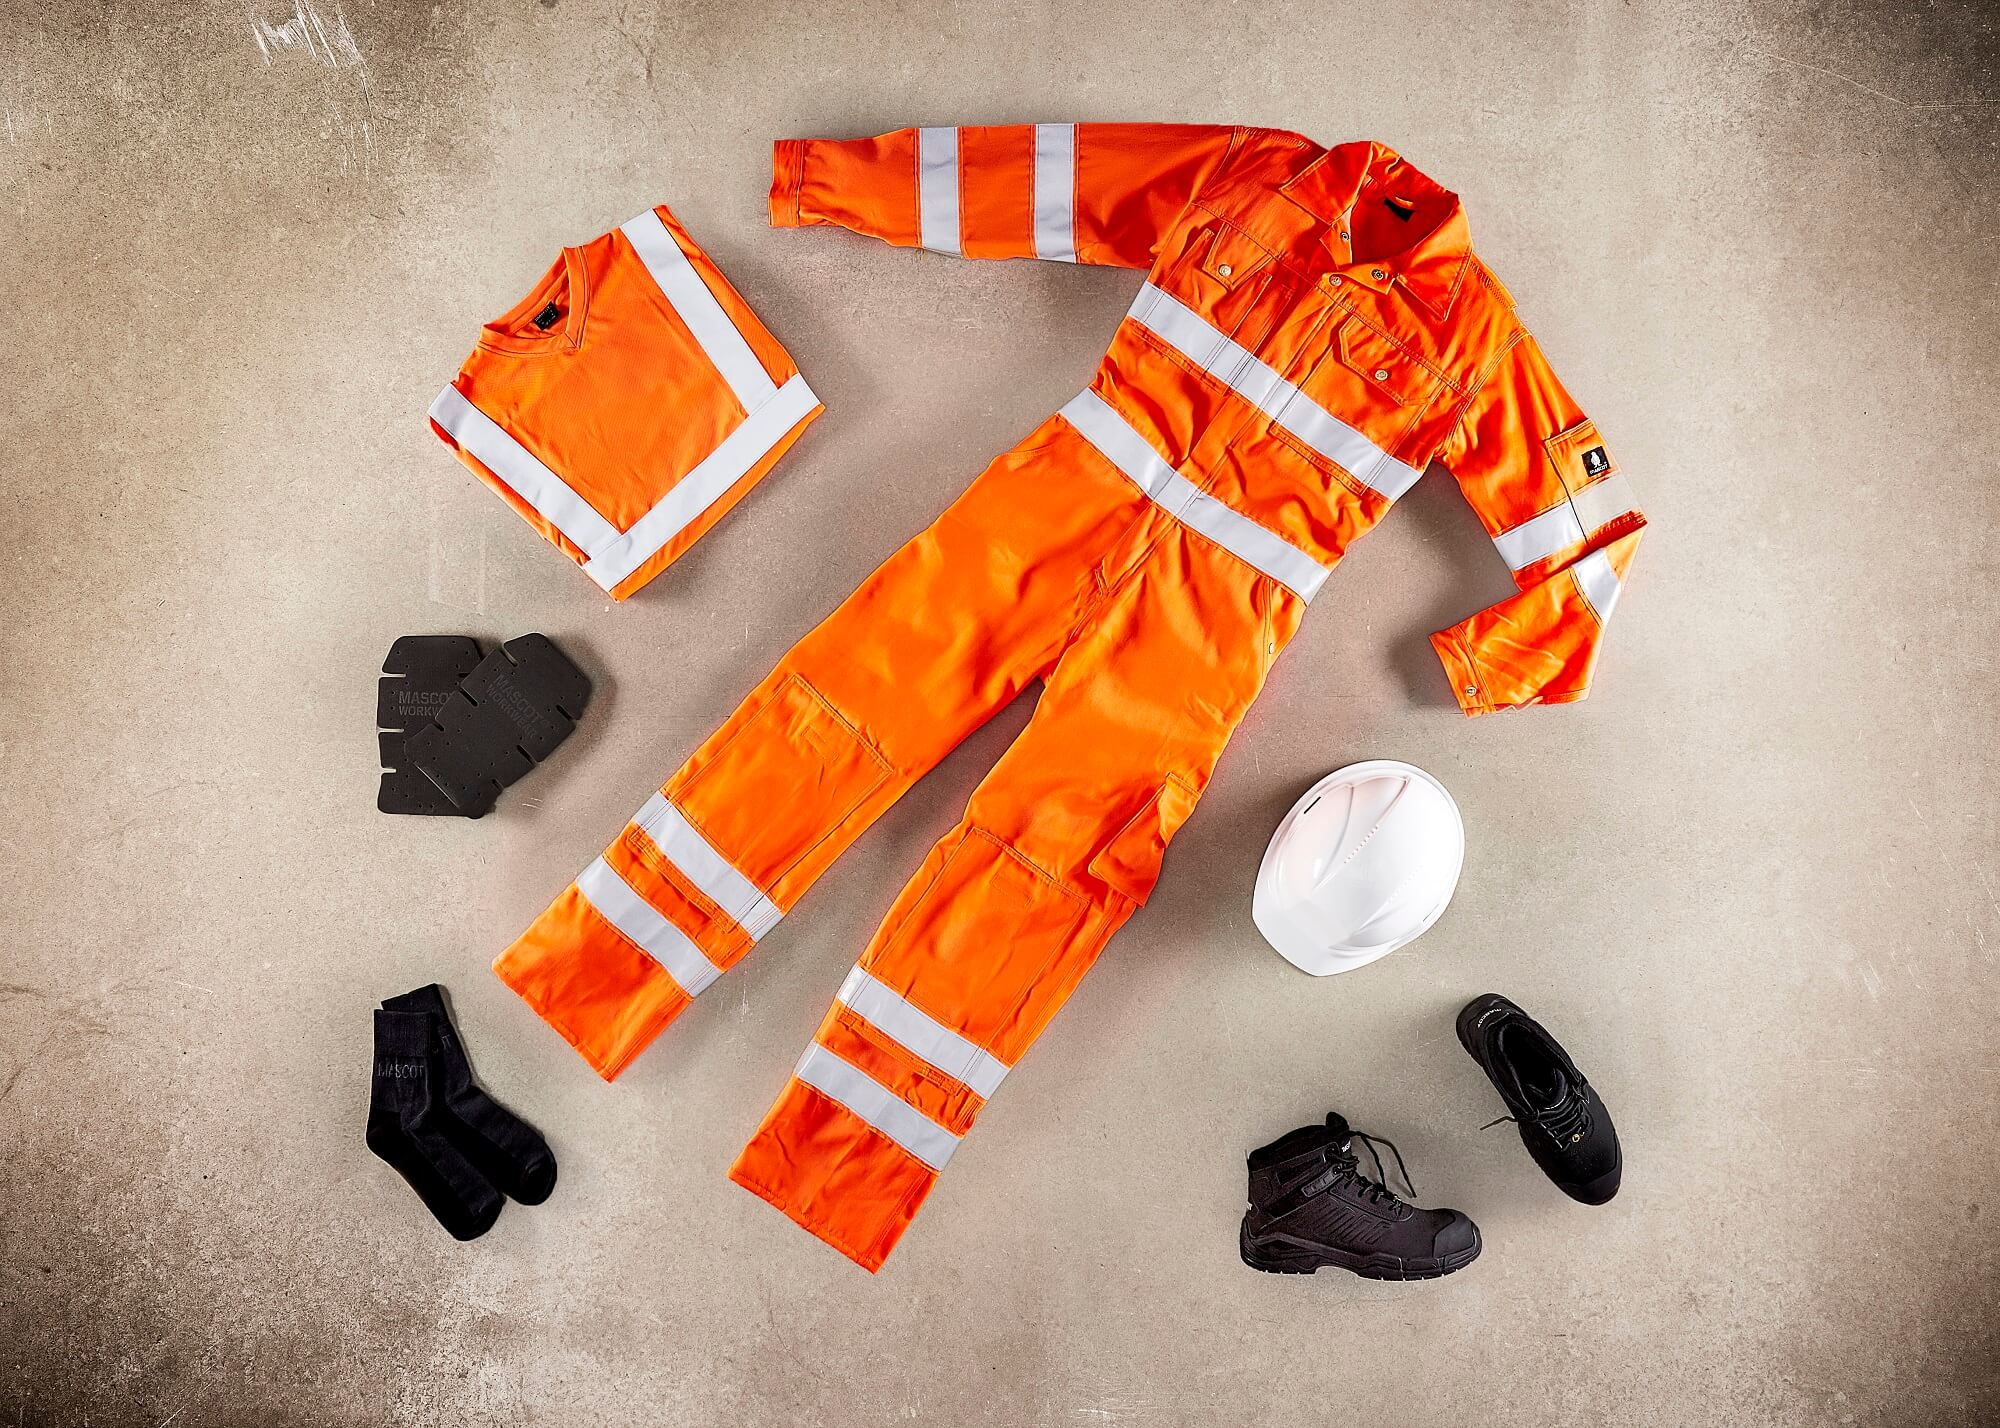 Fluorescent orange - Boilersuit, Safety Boot & Accessories - Collage